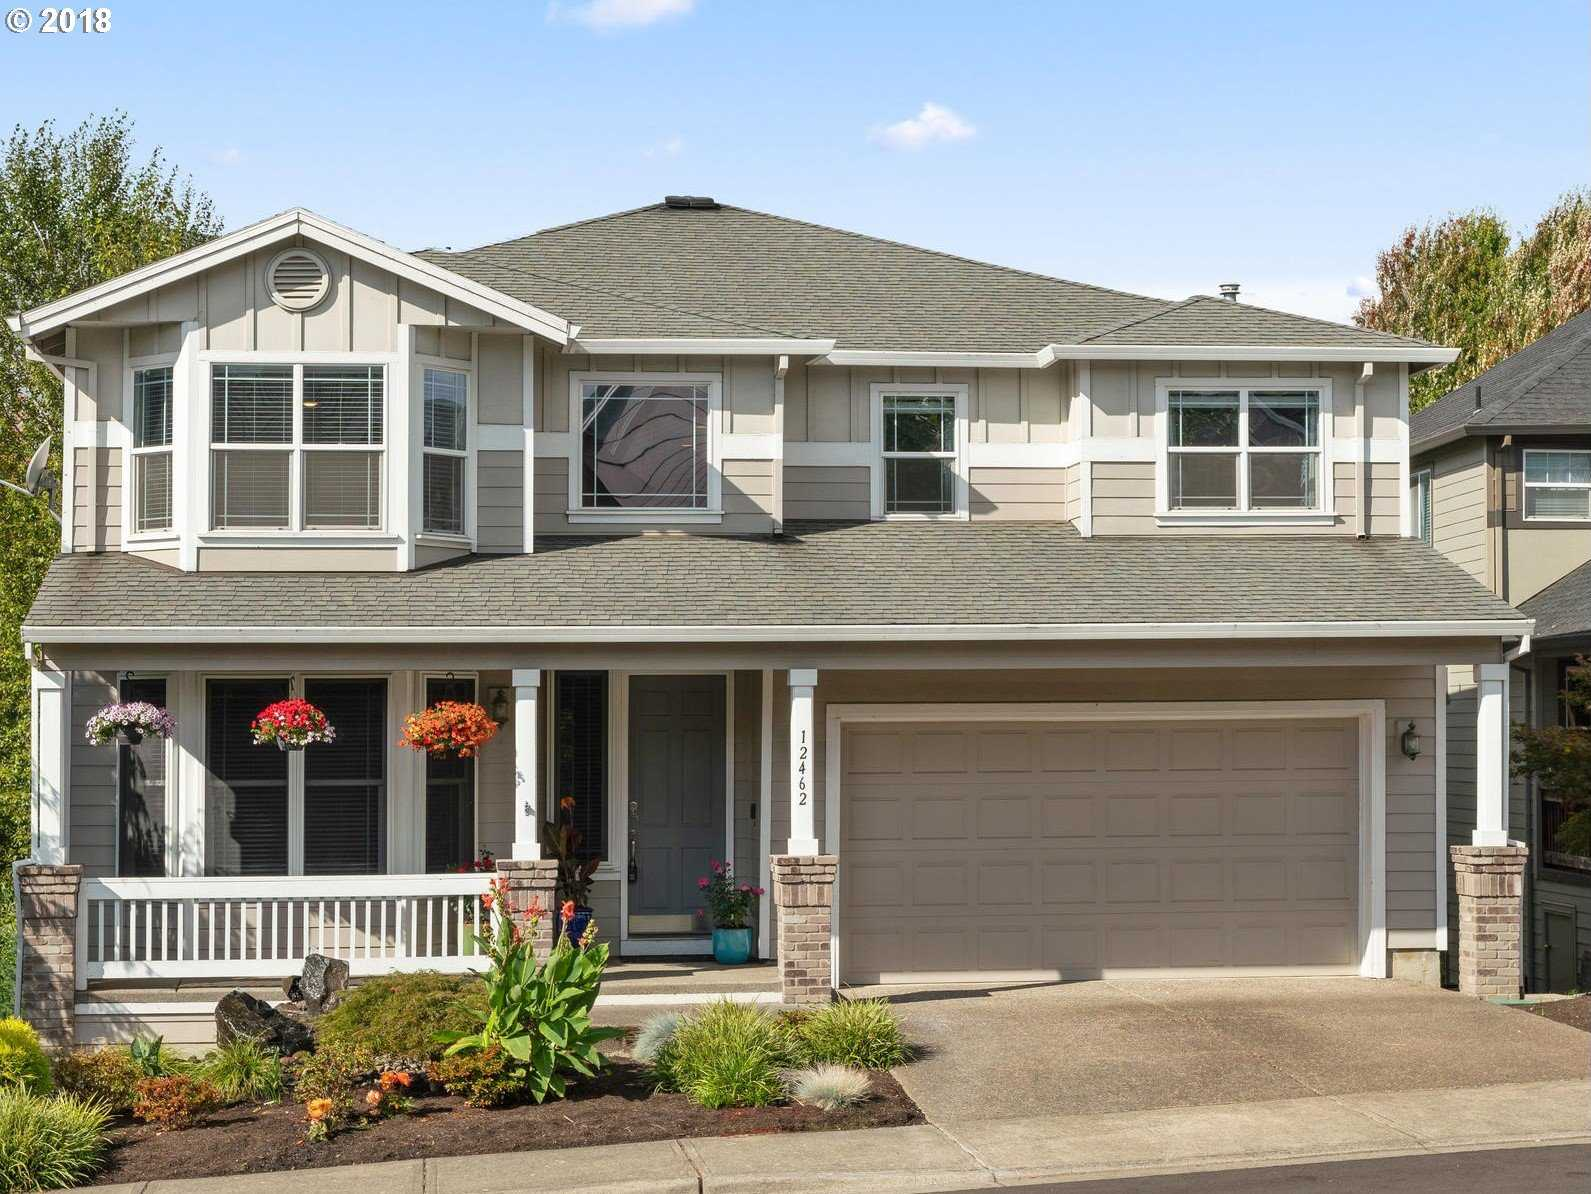 $549,900 - 4Br/3Ba -  for Sale in Bull Mountain, Tigard